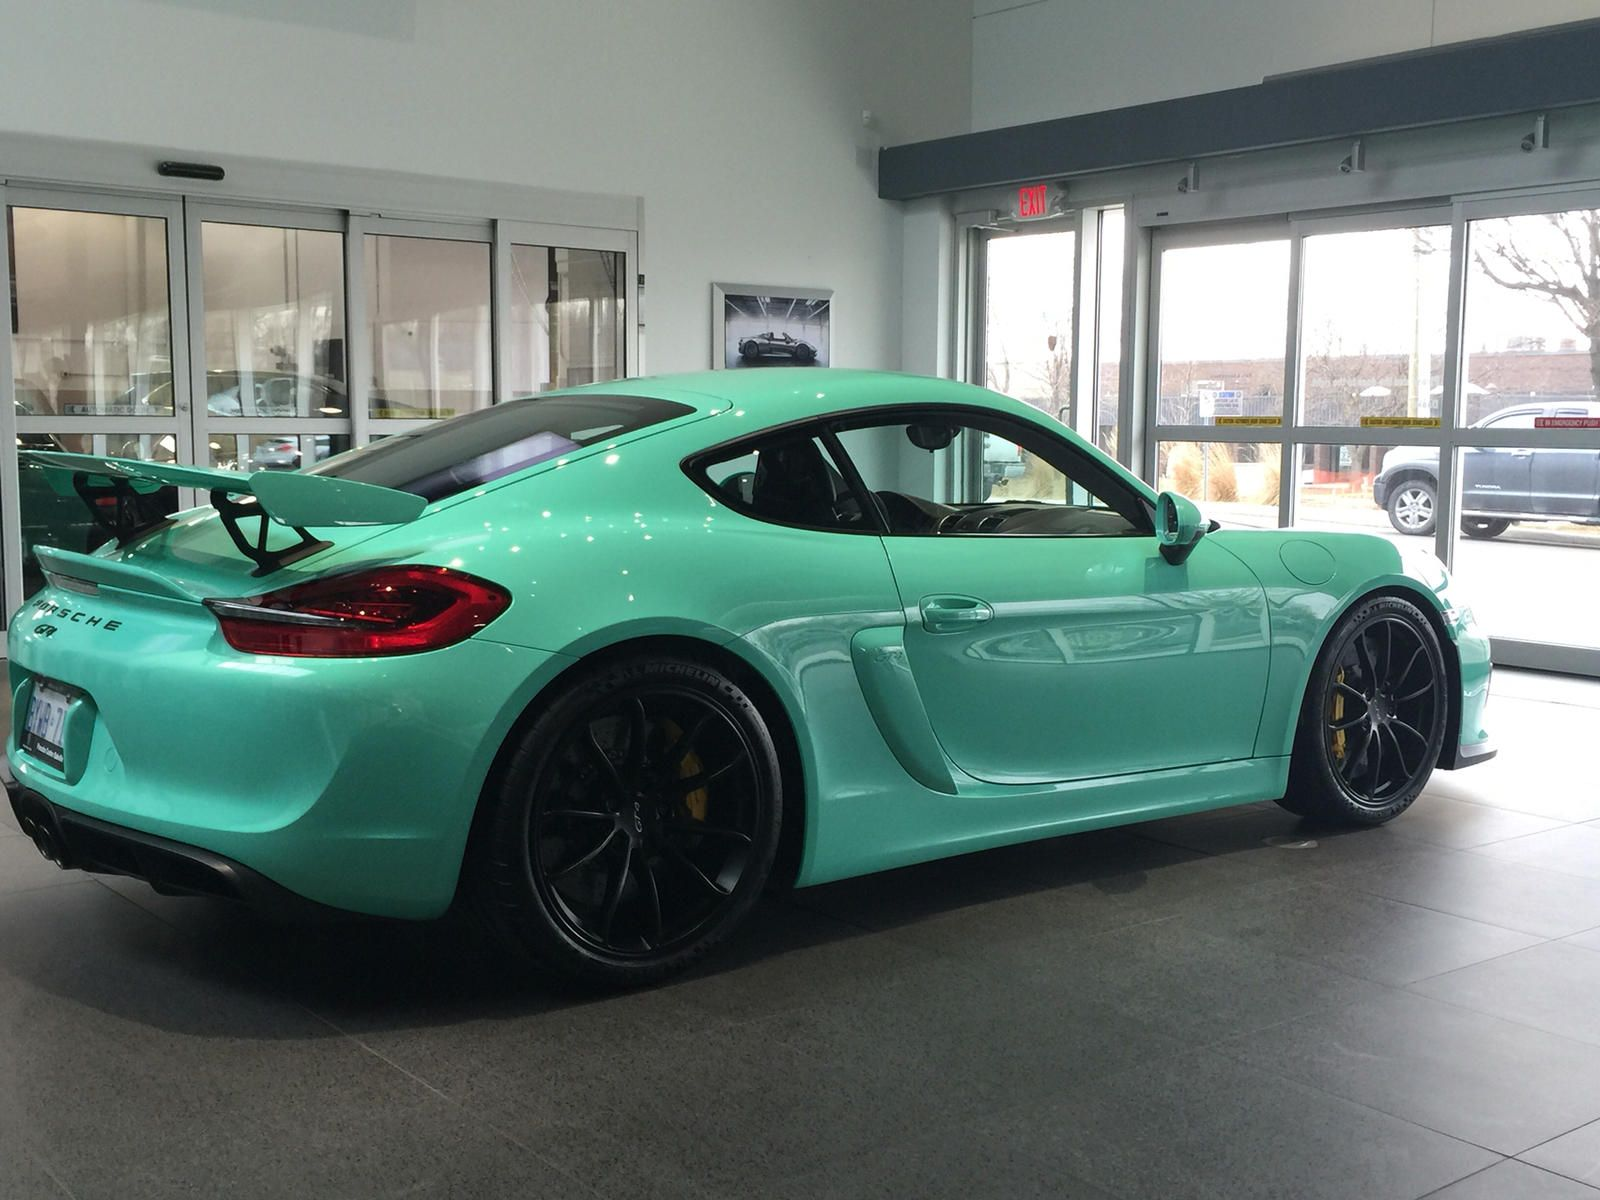 Gt4 pts mint green with lwbs and pccbs page 6 rennlist discussion forums